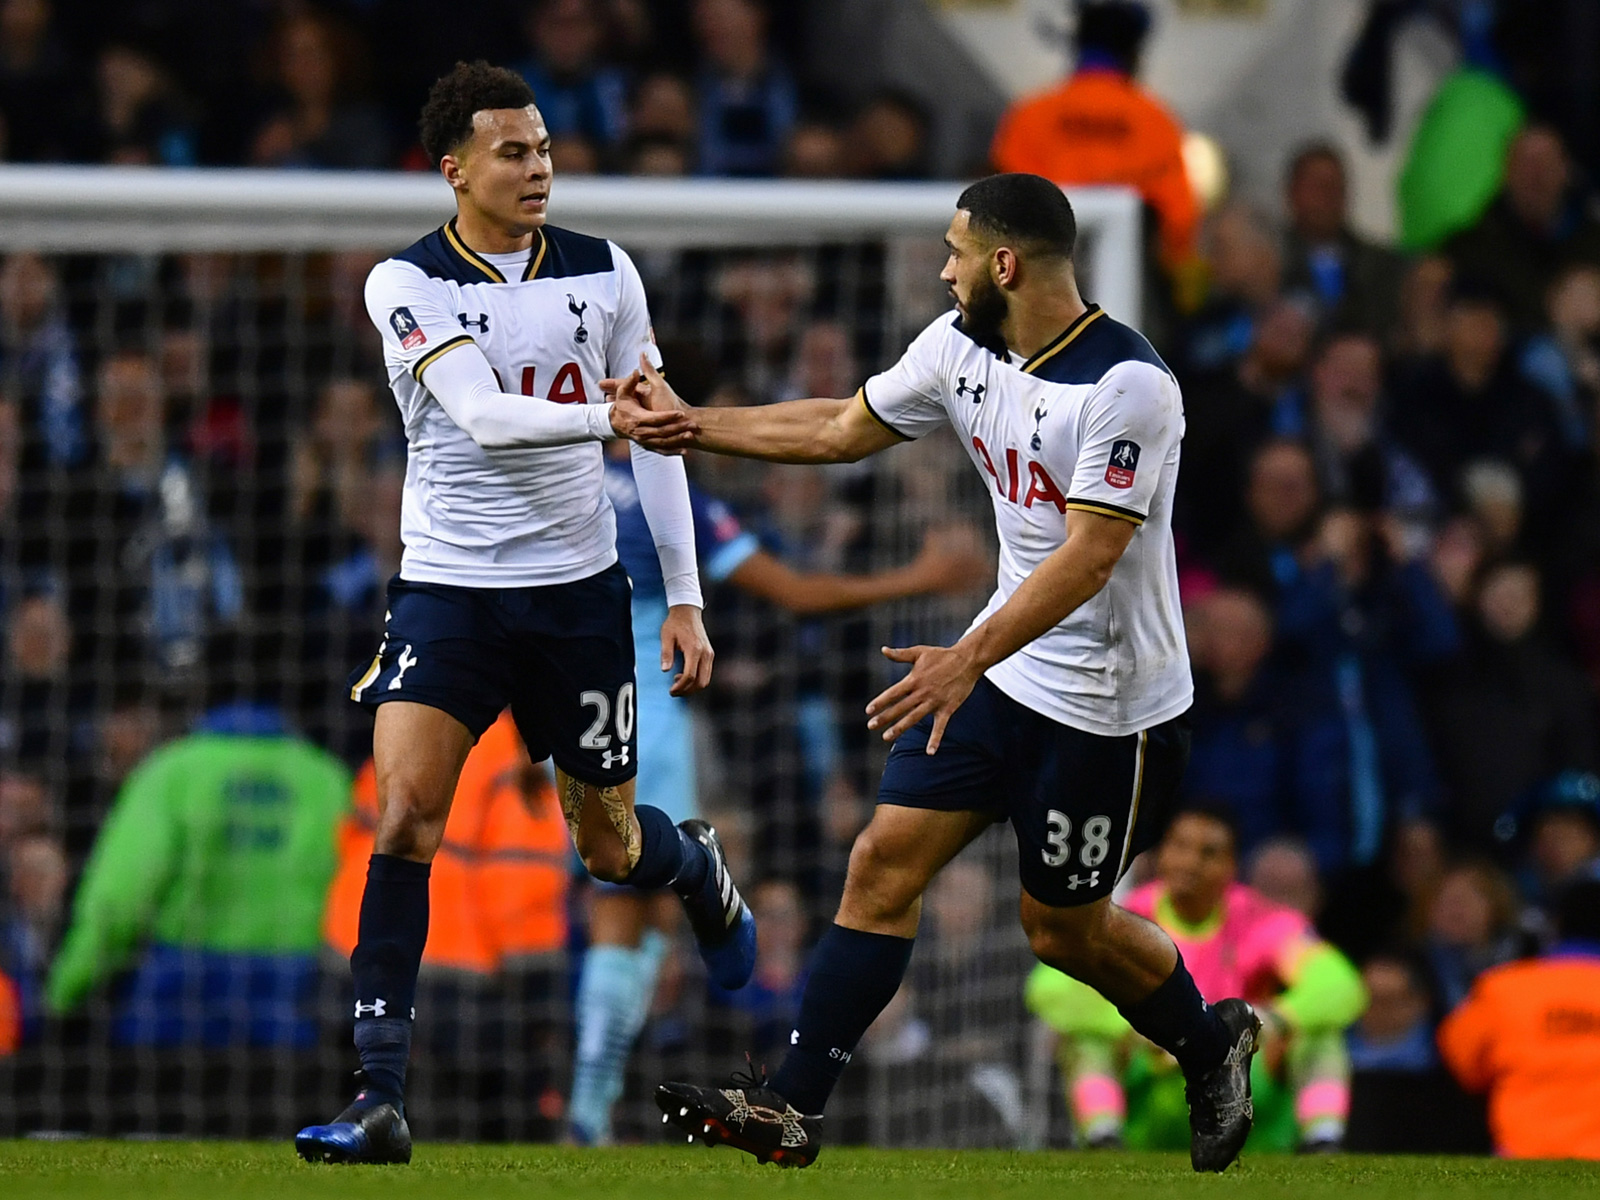 Cameron Carter-Vickers and Dele Alli in a League Cup match in 2017